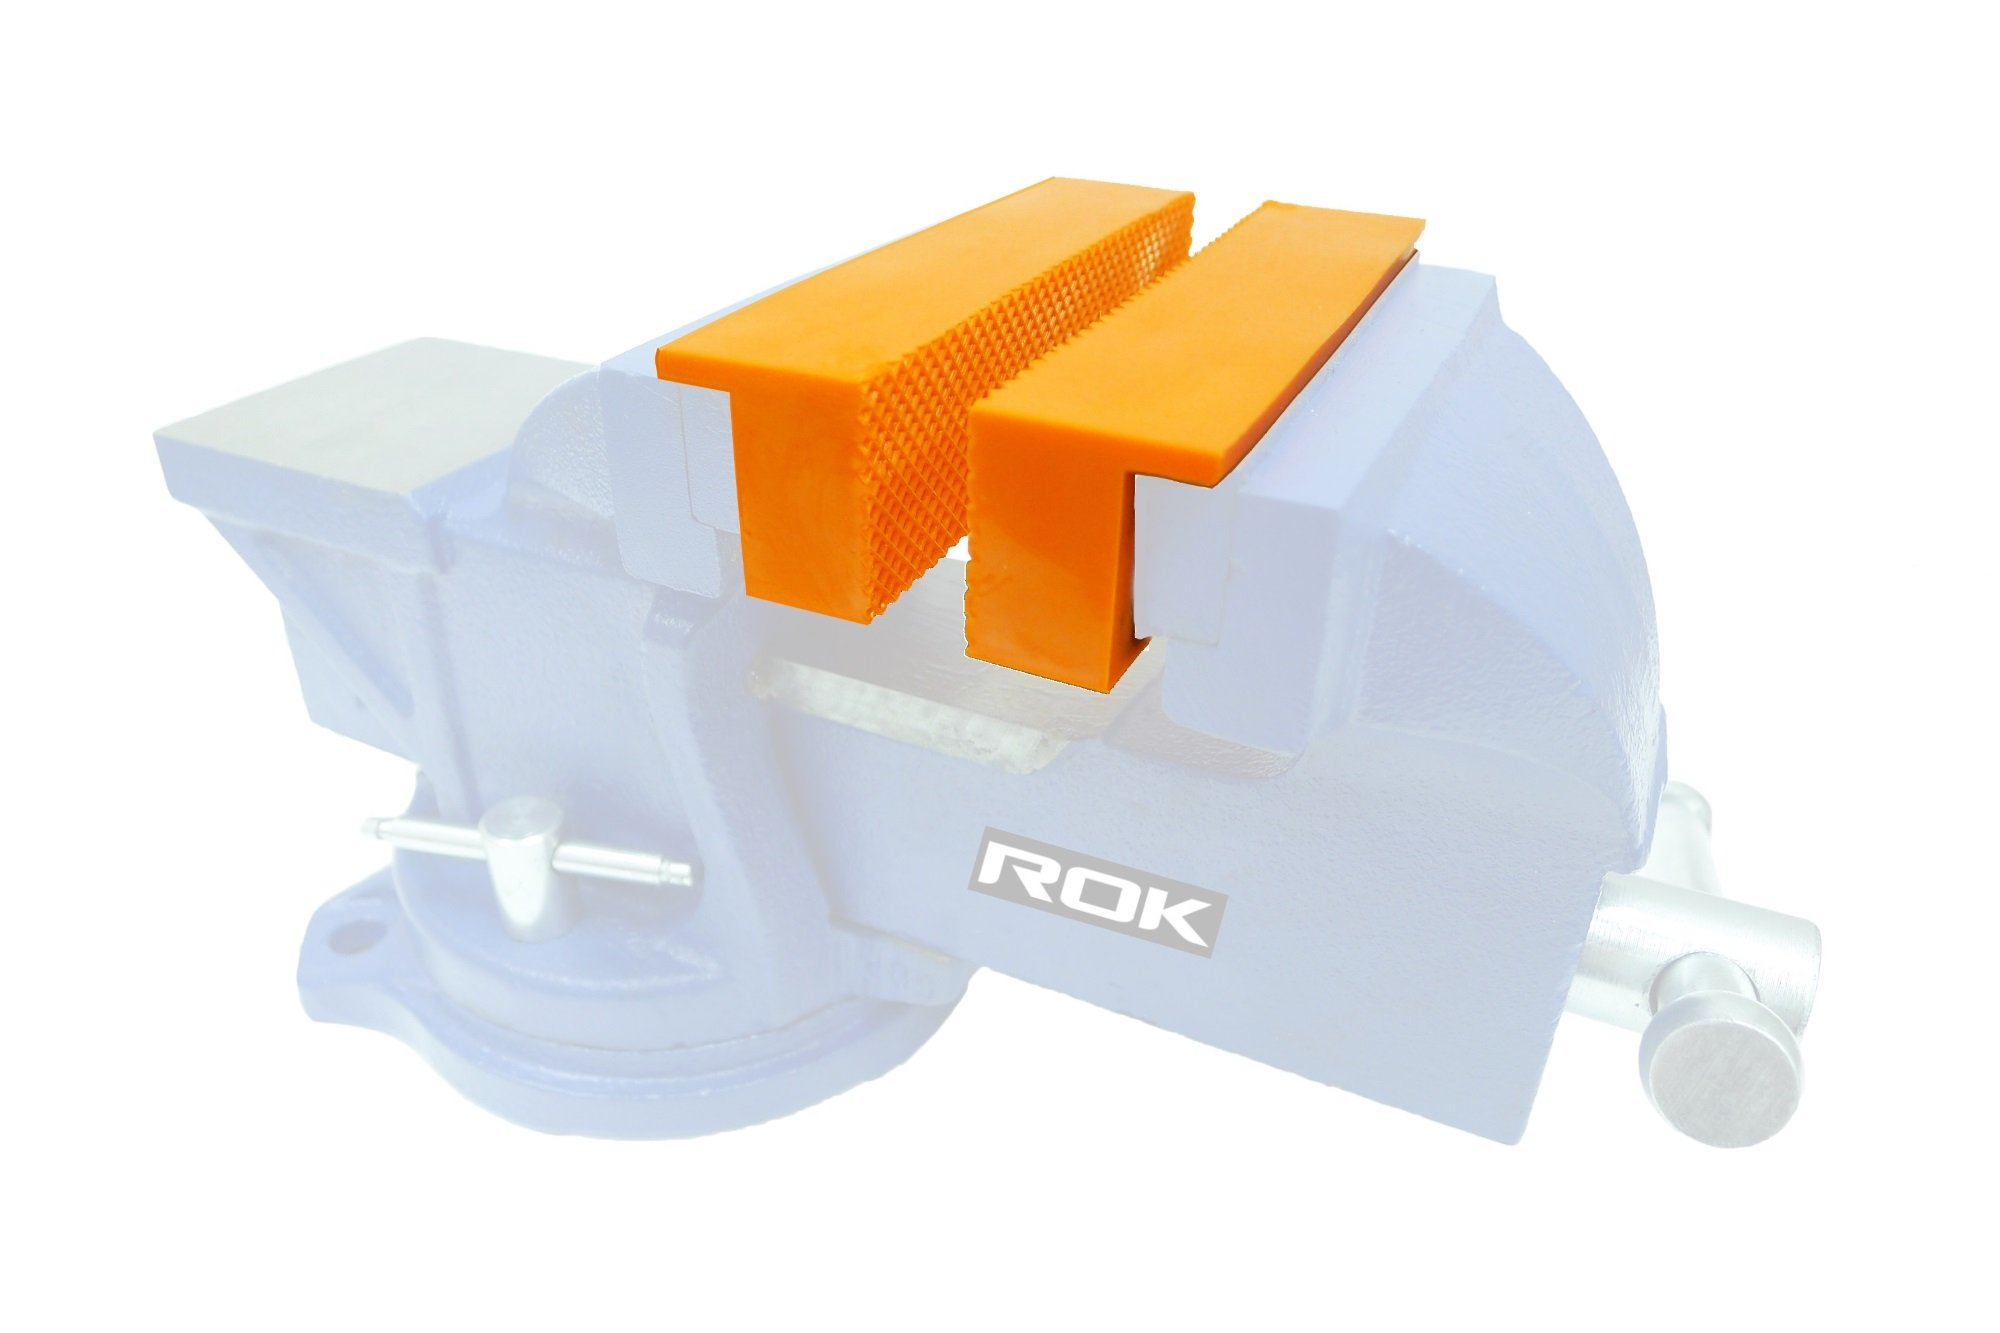 ROK 6 Inch Magnetic Vise Jaw Liner Pads - Pair by ROK Tools (Image #1)